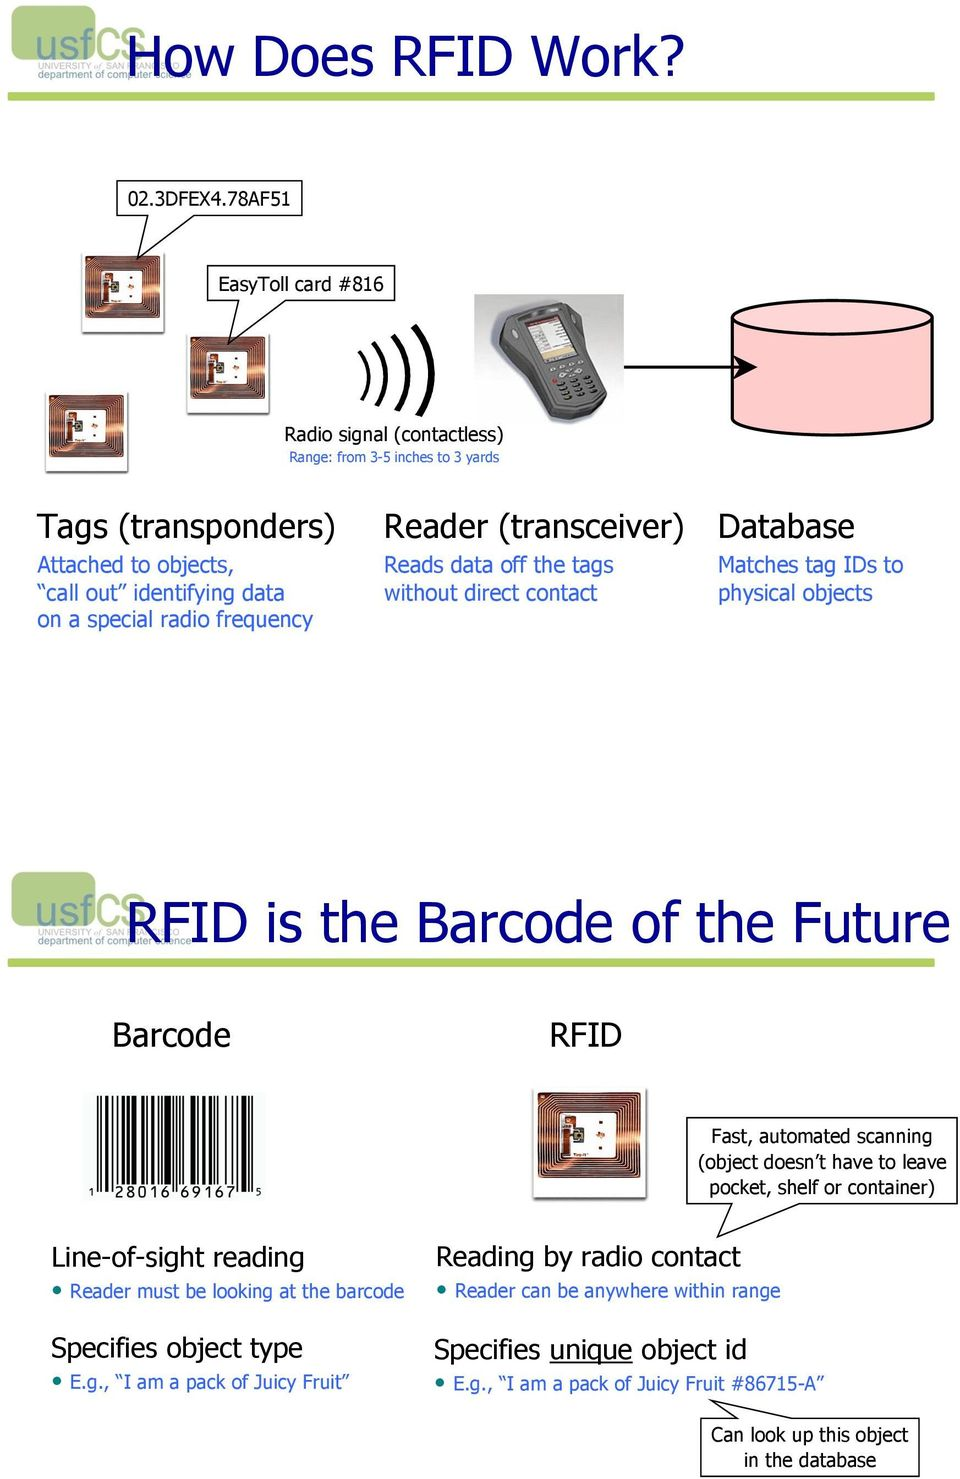 Reader (transceiver) Reads data off the tags without direct contact Database Matches tag IDs to physical objects RFID is the Barcode of the Future Barcode RFID Fast, automated scanning